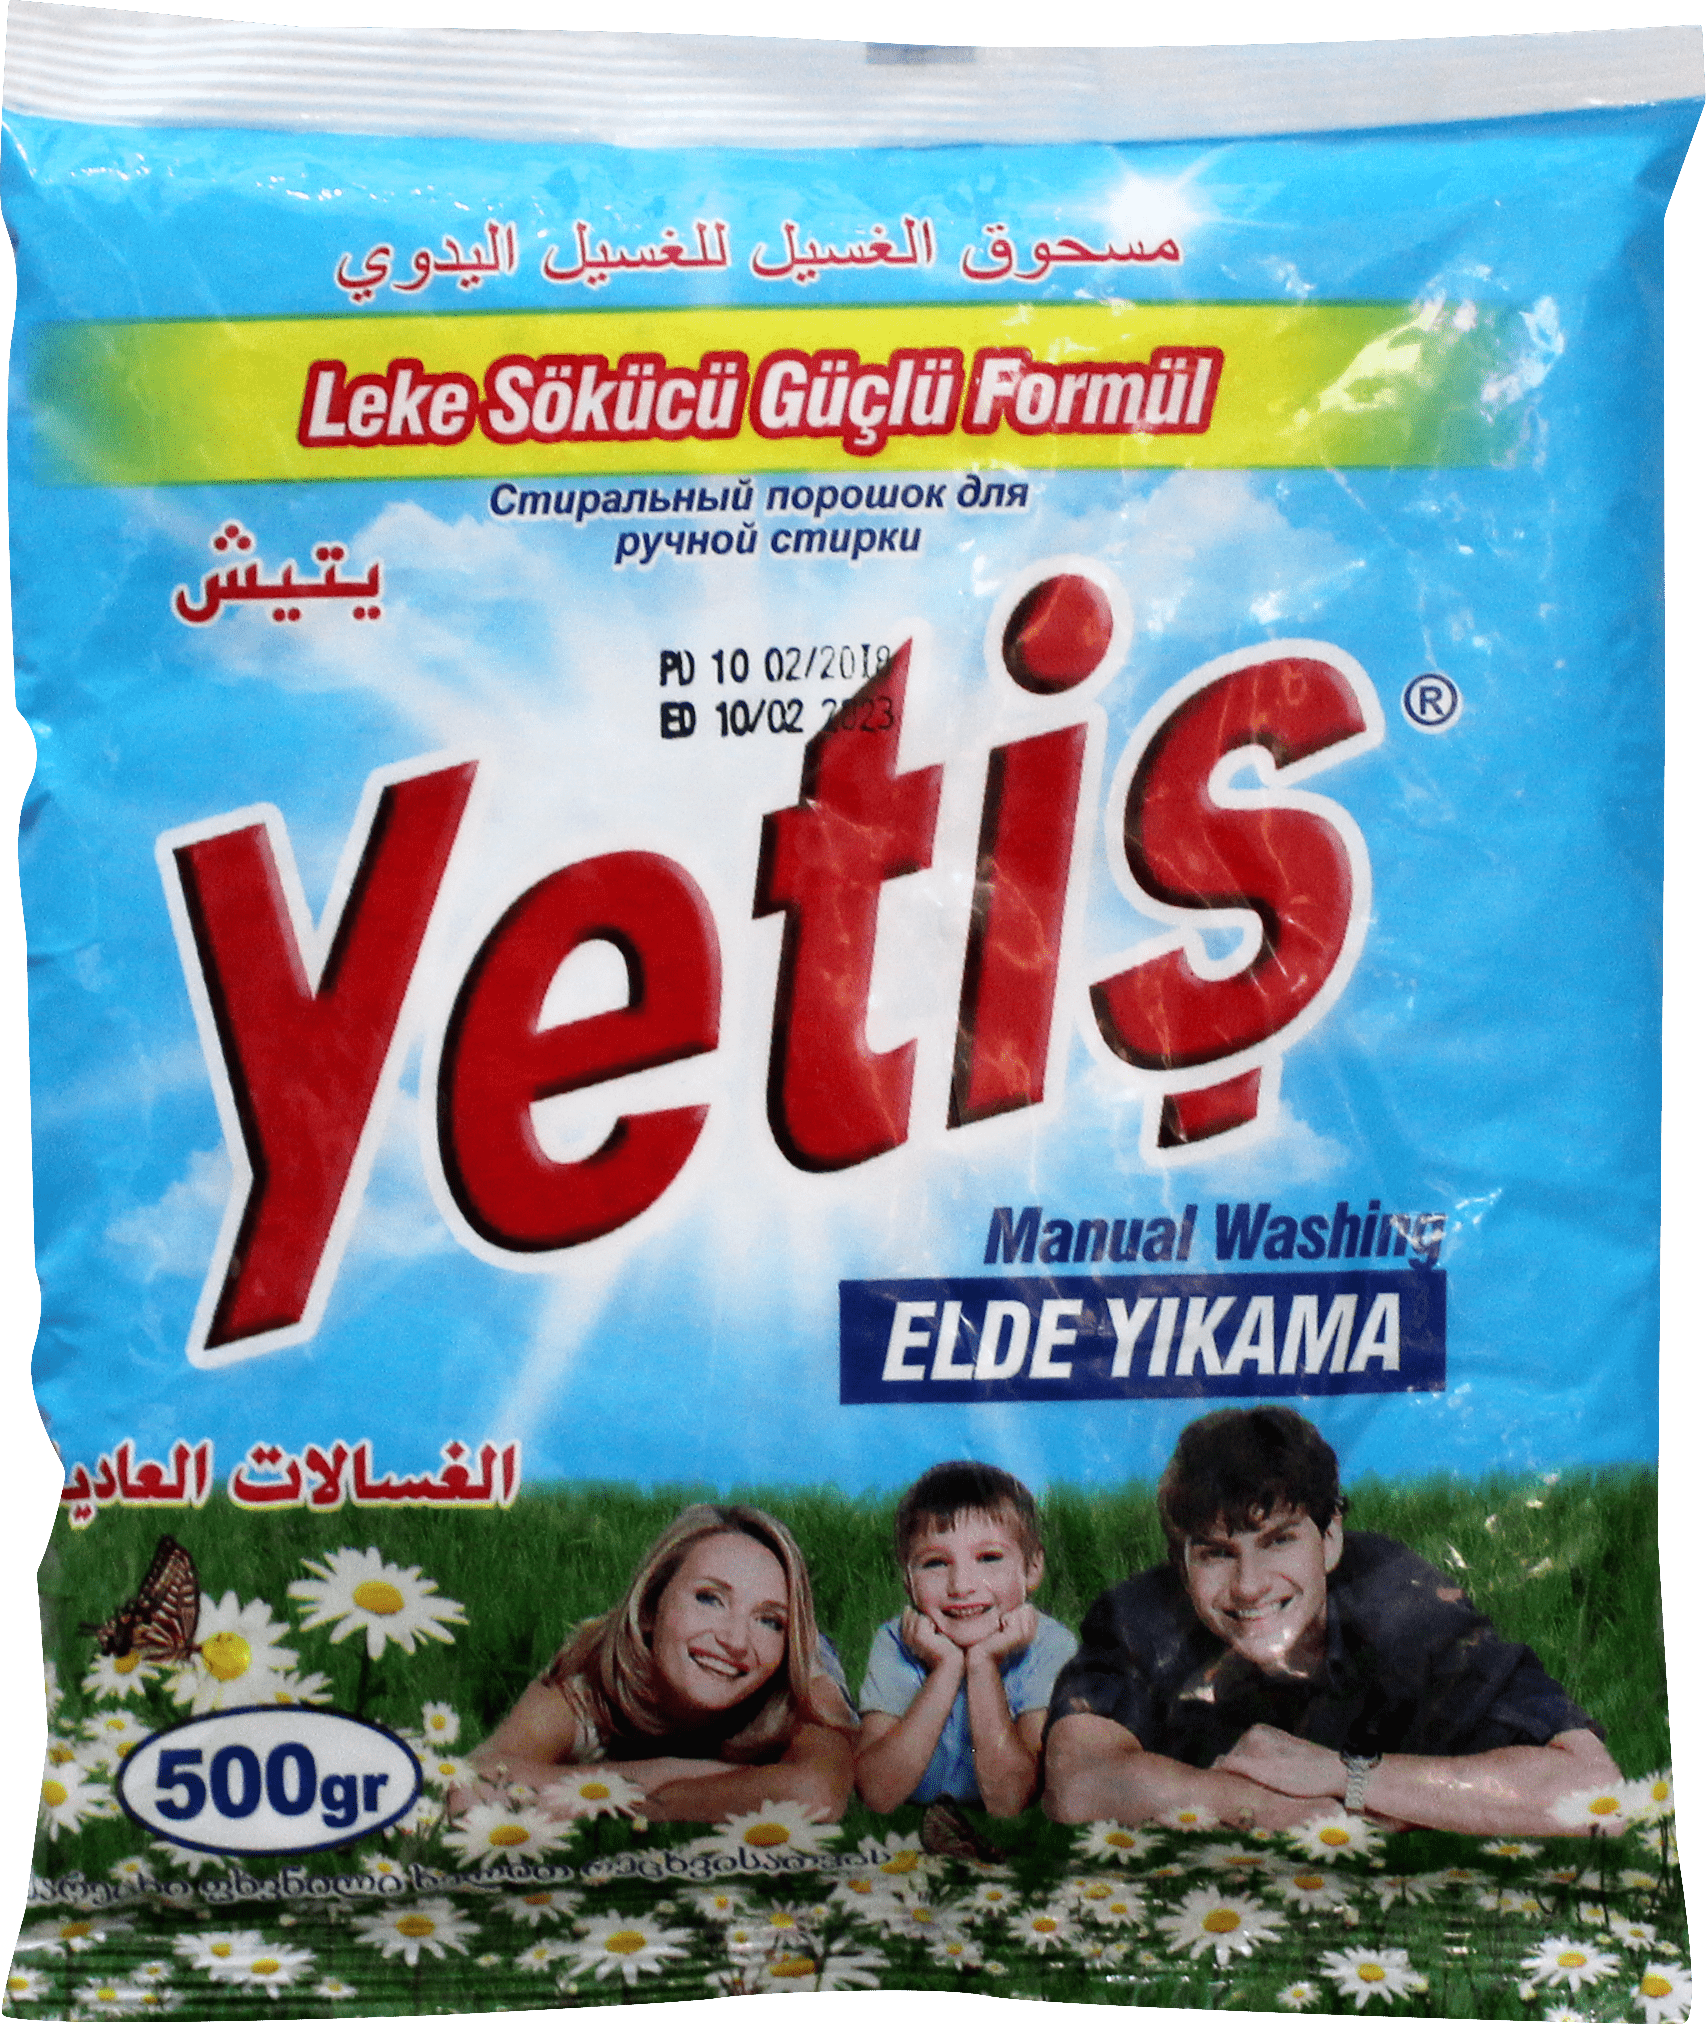 Yetis Manual Washing